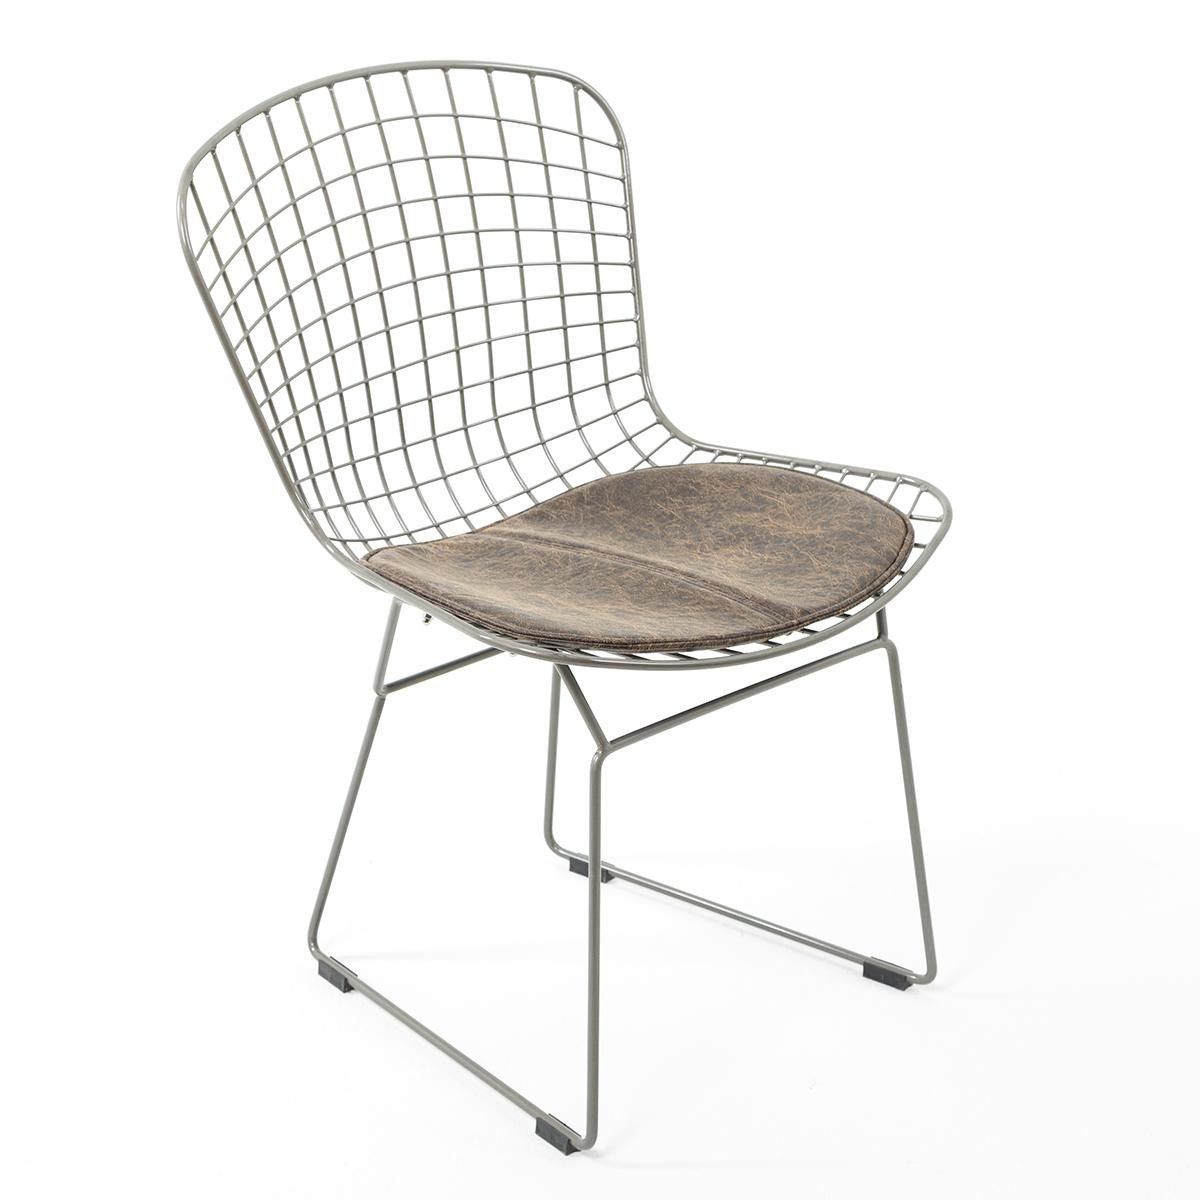 Modern Metal Mesh Chair With Leather Cushion